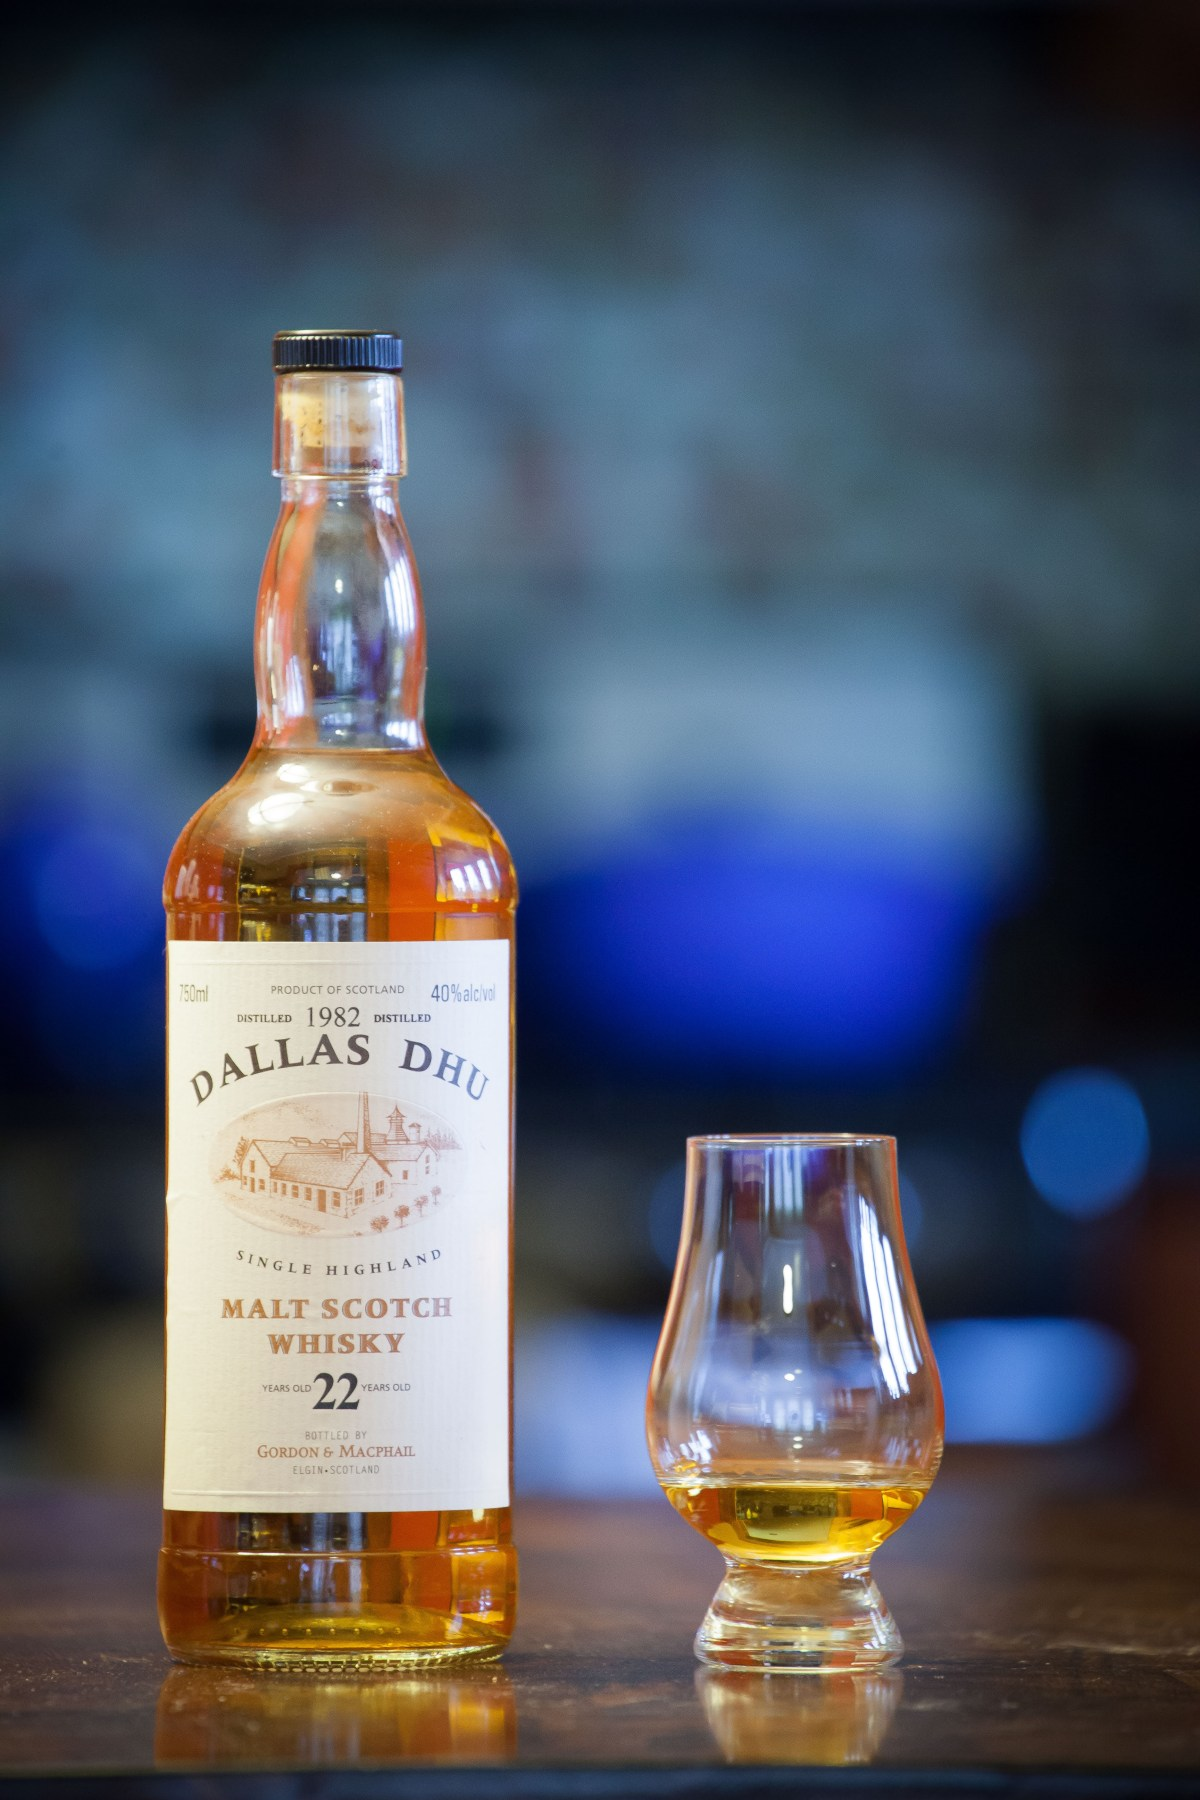 Dallas Dhu 22 (Gordon & MacPhail) Review